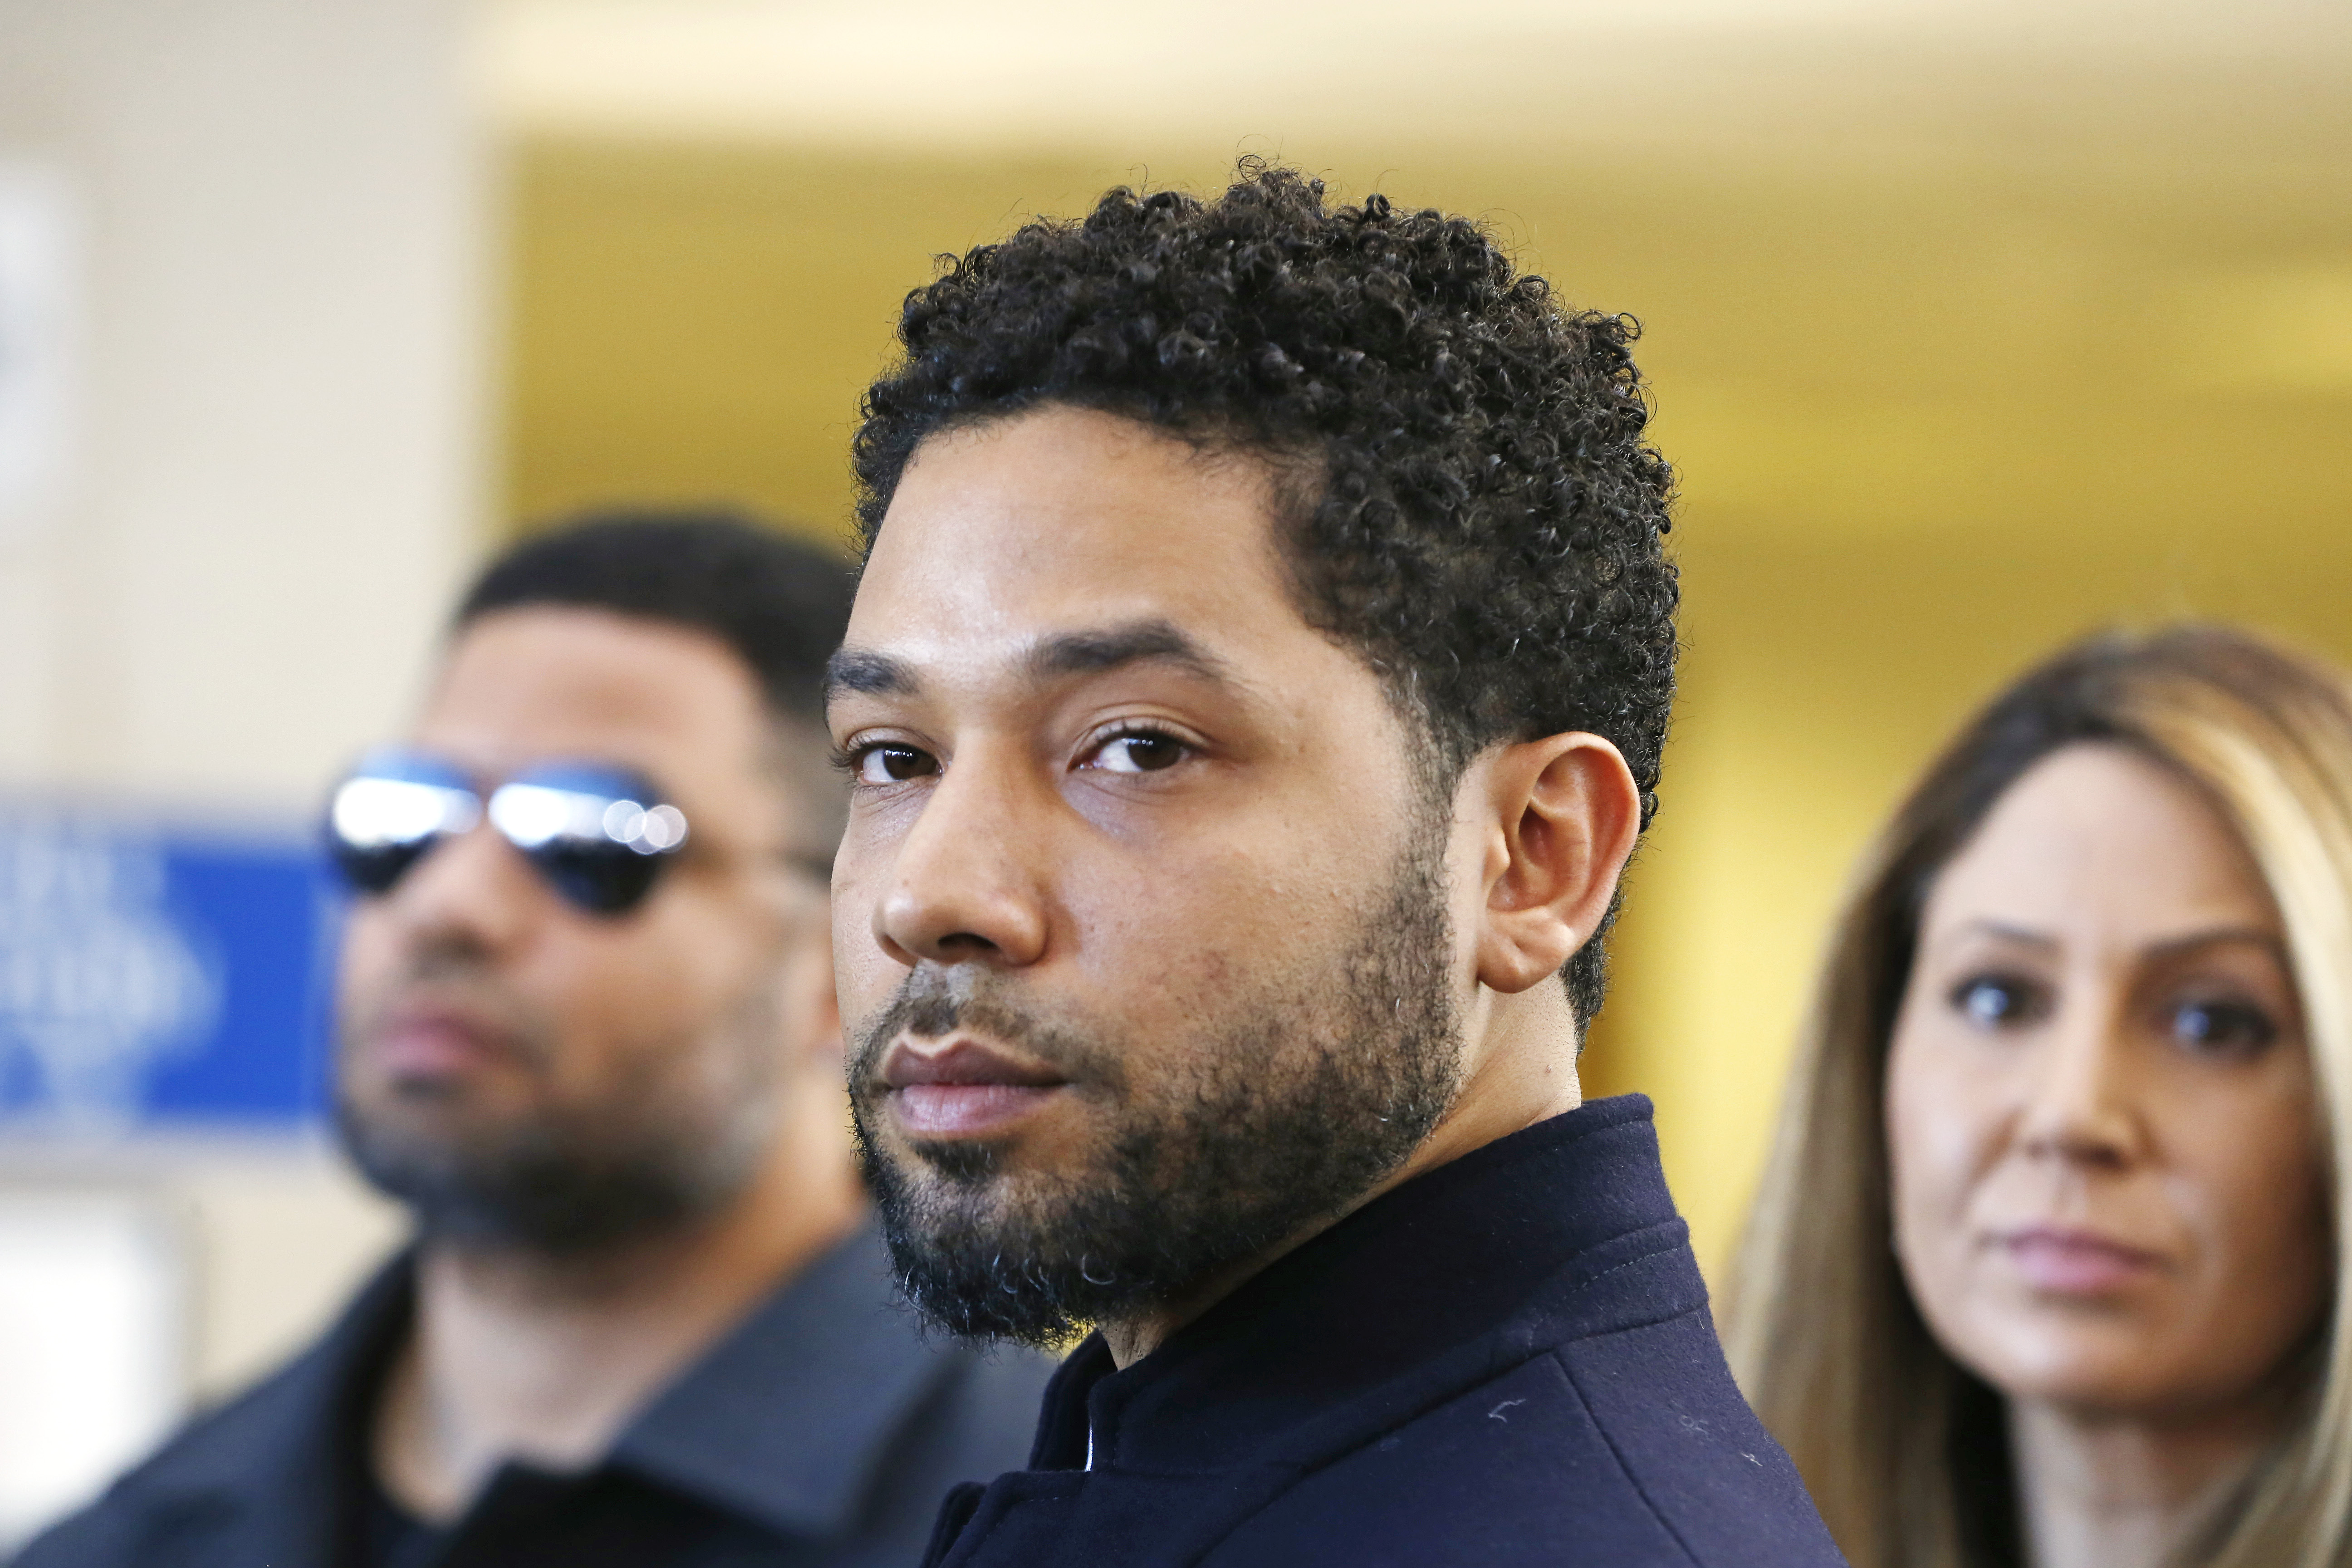 The 911 Calls From The Night Jussie Smollett Was Allegedly Attacked Is Released!